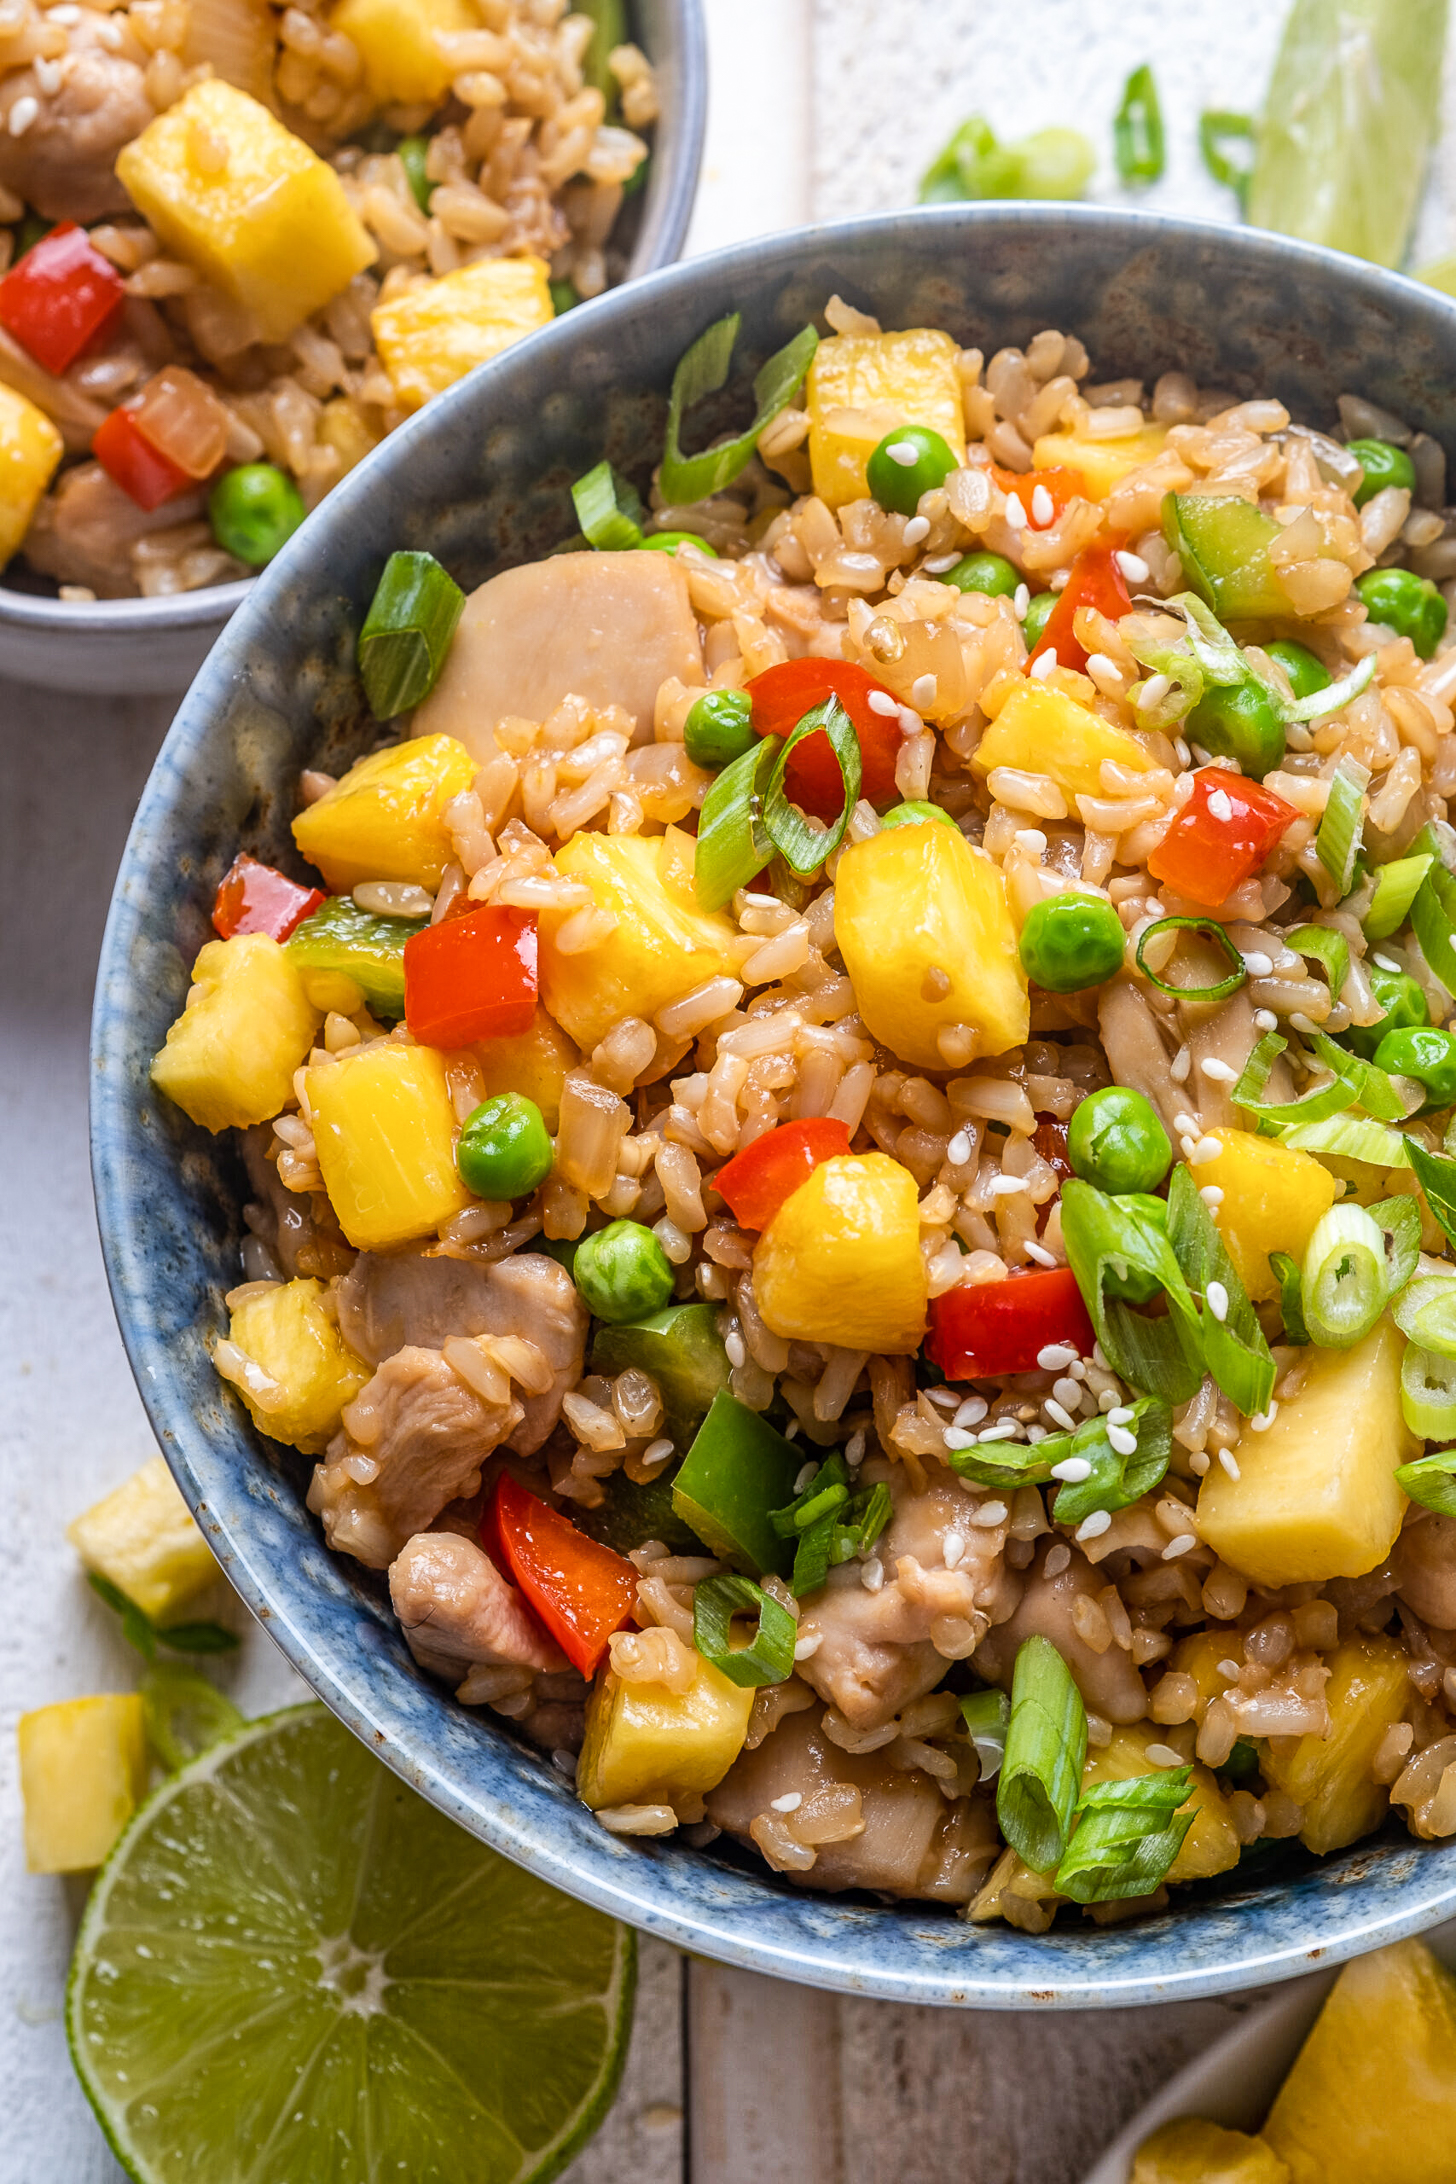 Pineapple chicken fried rice in a serving bowl.